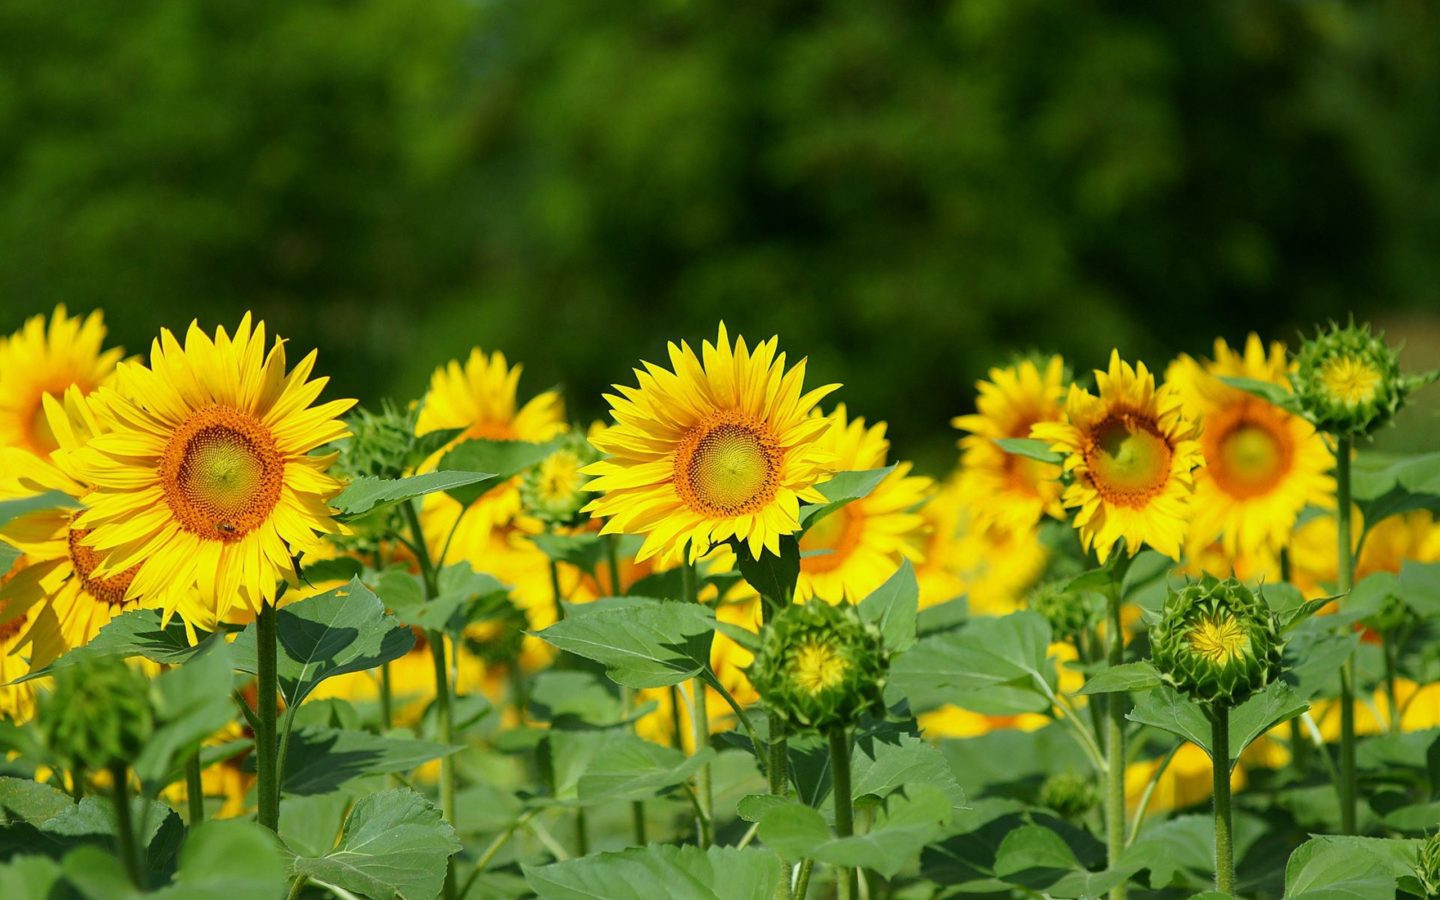 Fall Desktop Wallpaper With Sunflowers Sunflower Background Image Wallpapers13 Com